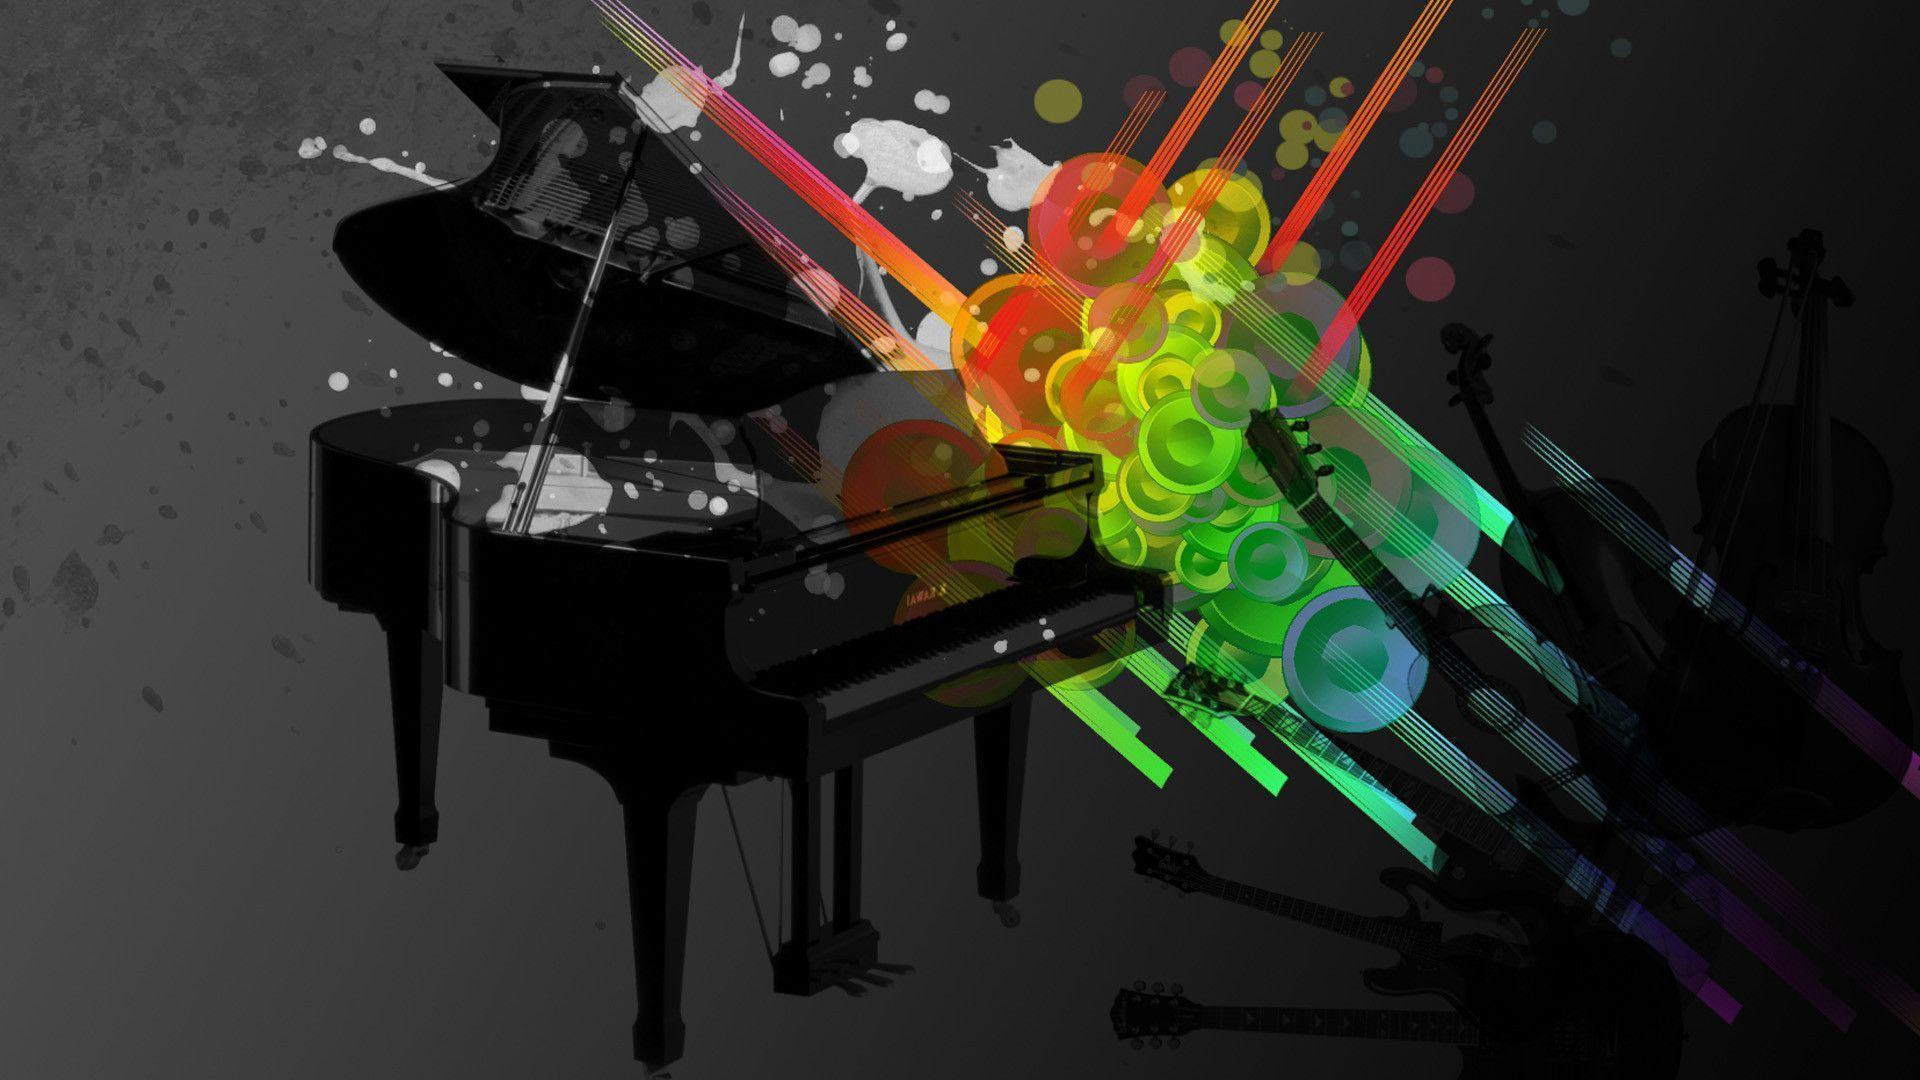 Colorful Piano Wallpaper Hd Images 3 HD Wallpapers | lzamgs.